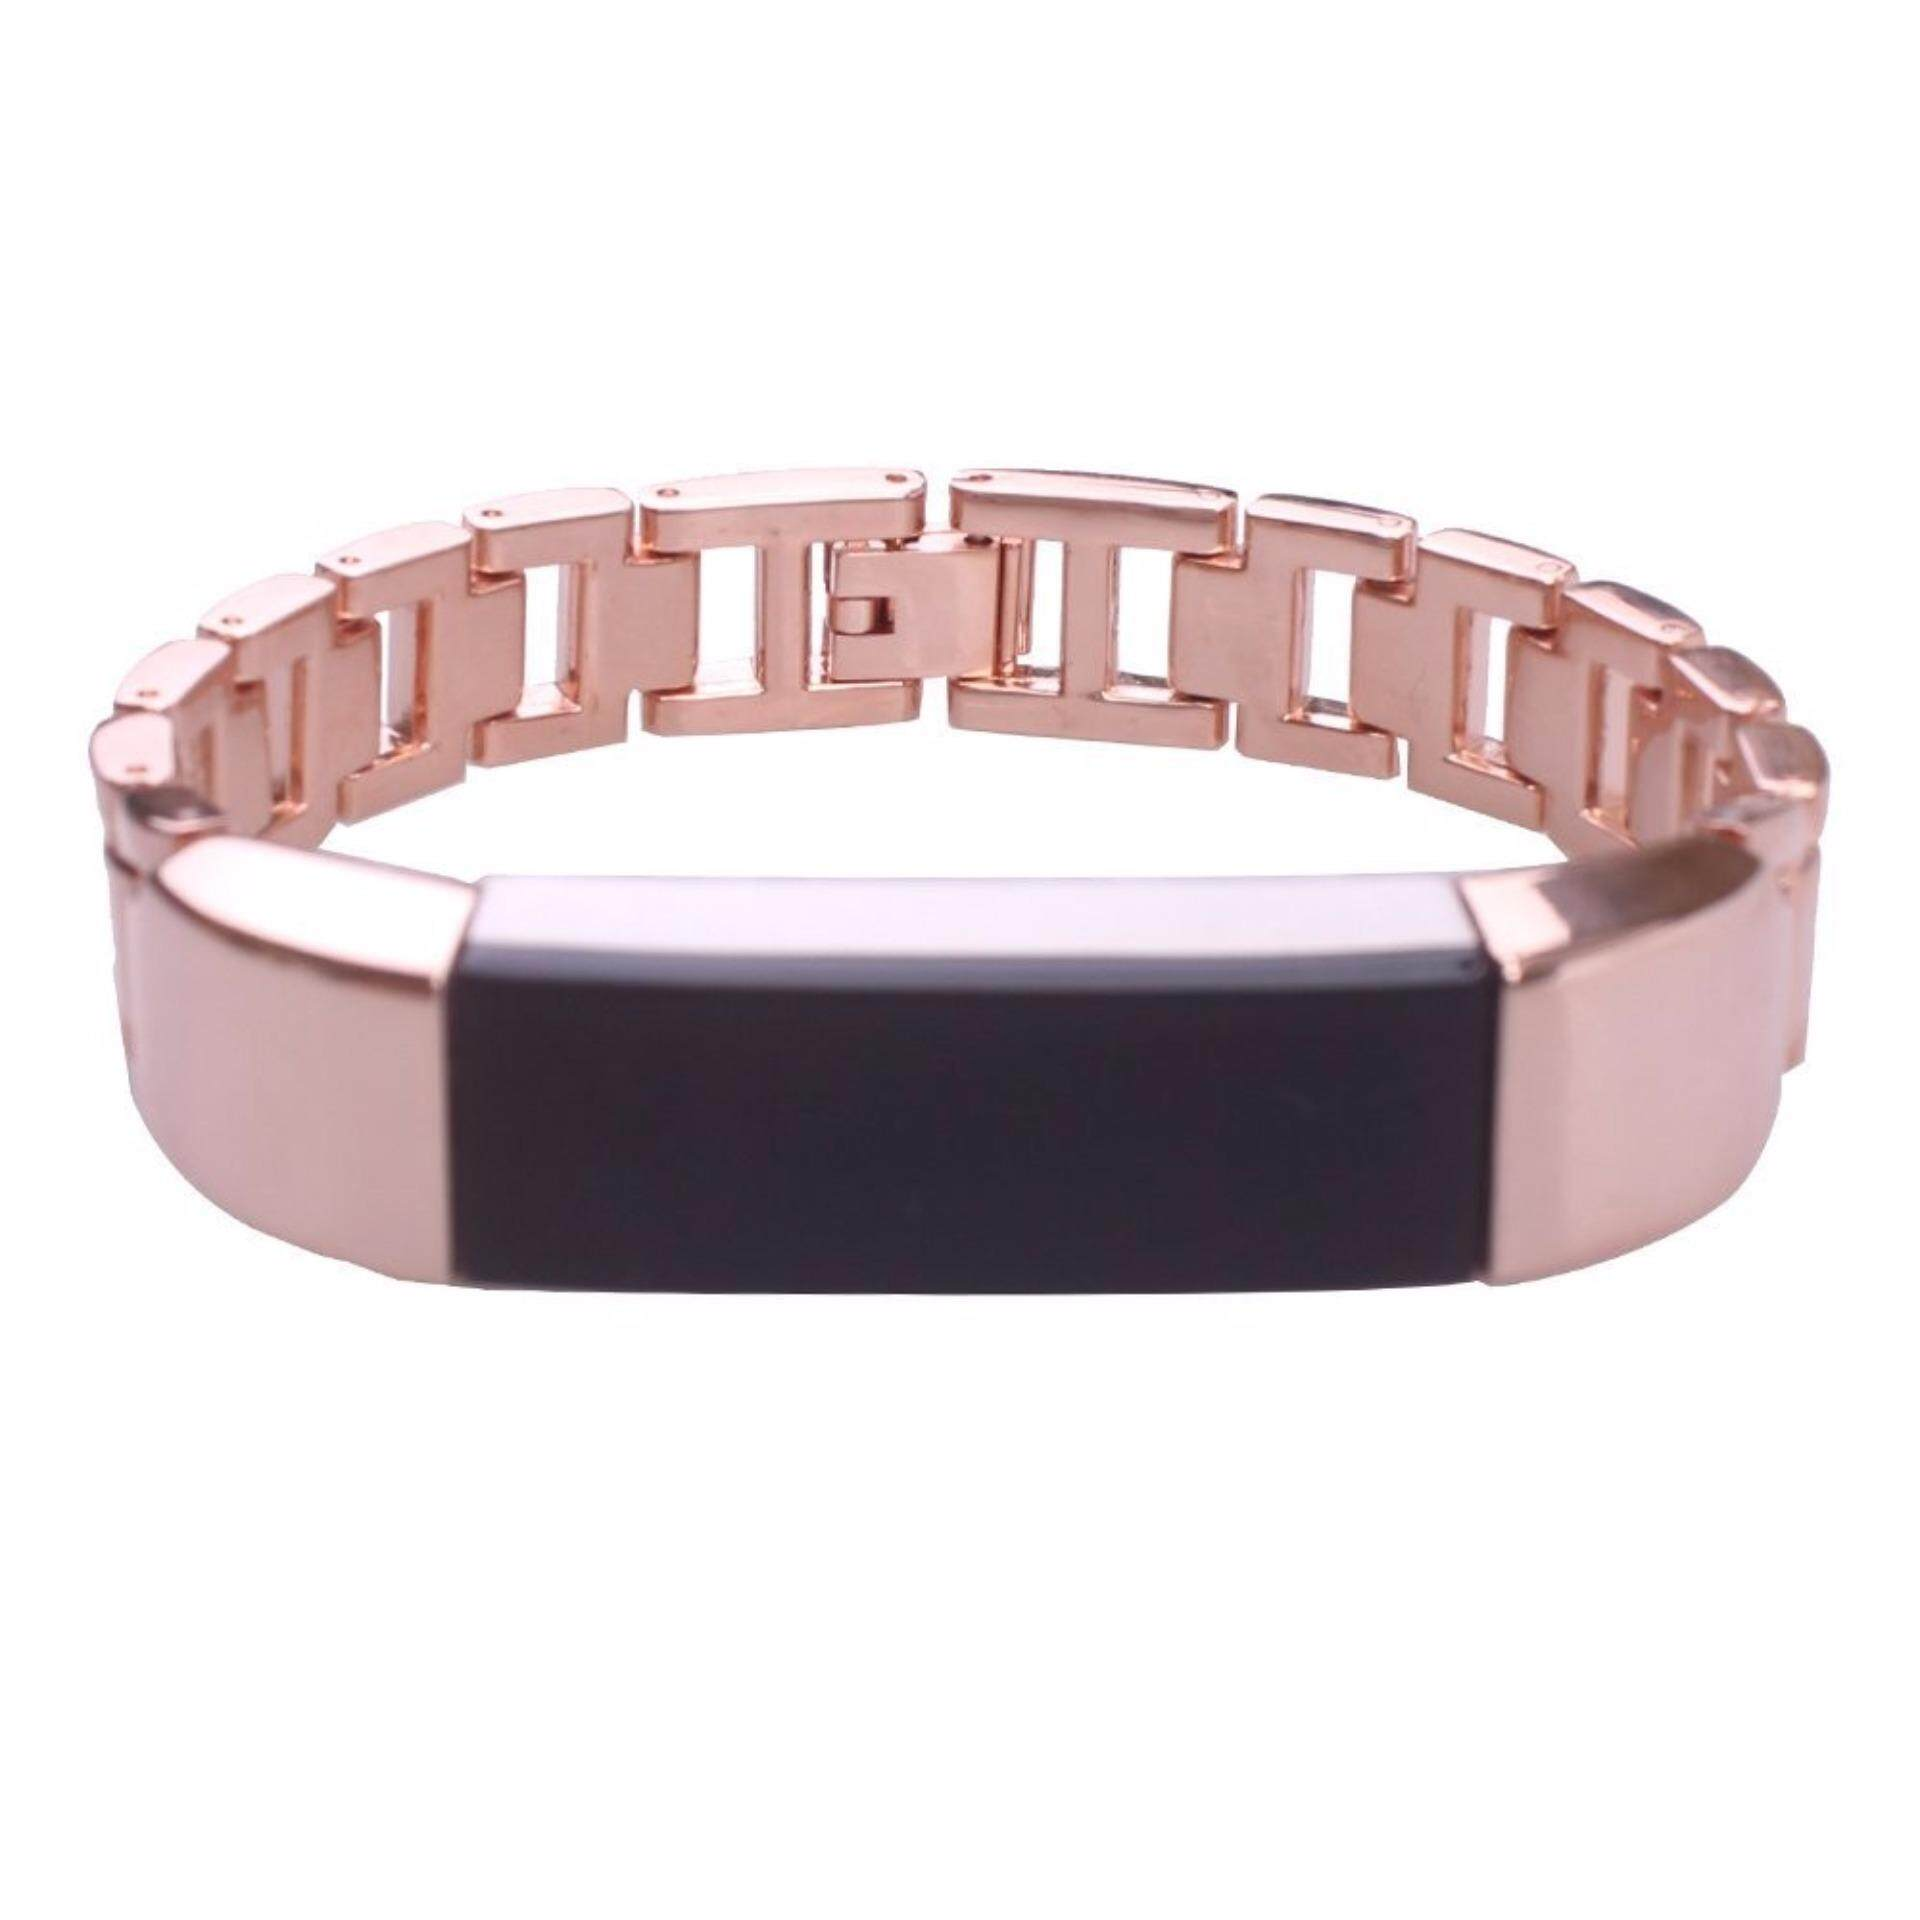 bands silicone wrist silicine product bracelet band img branded clothing copy wristband co gold glk